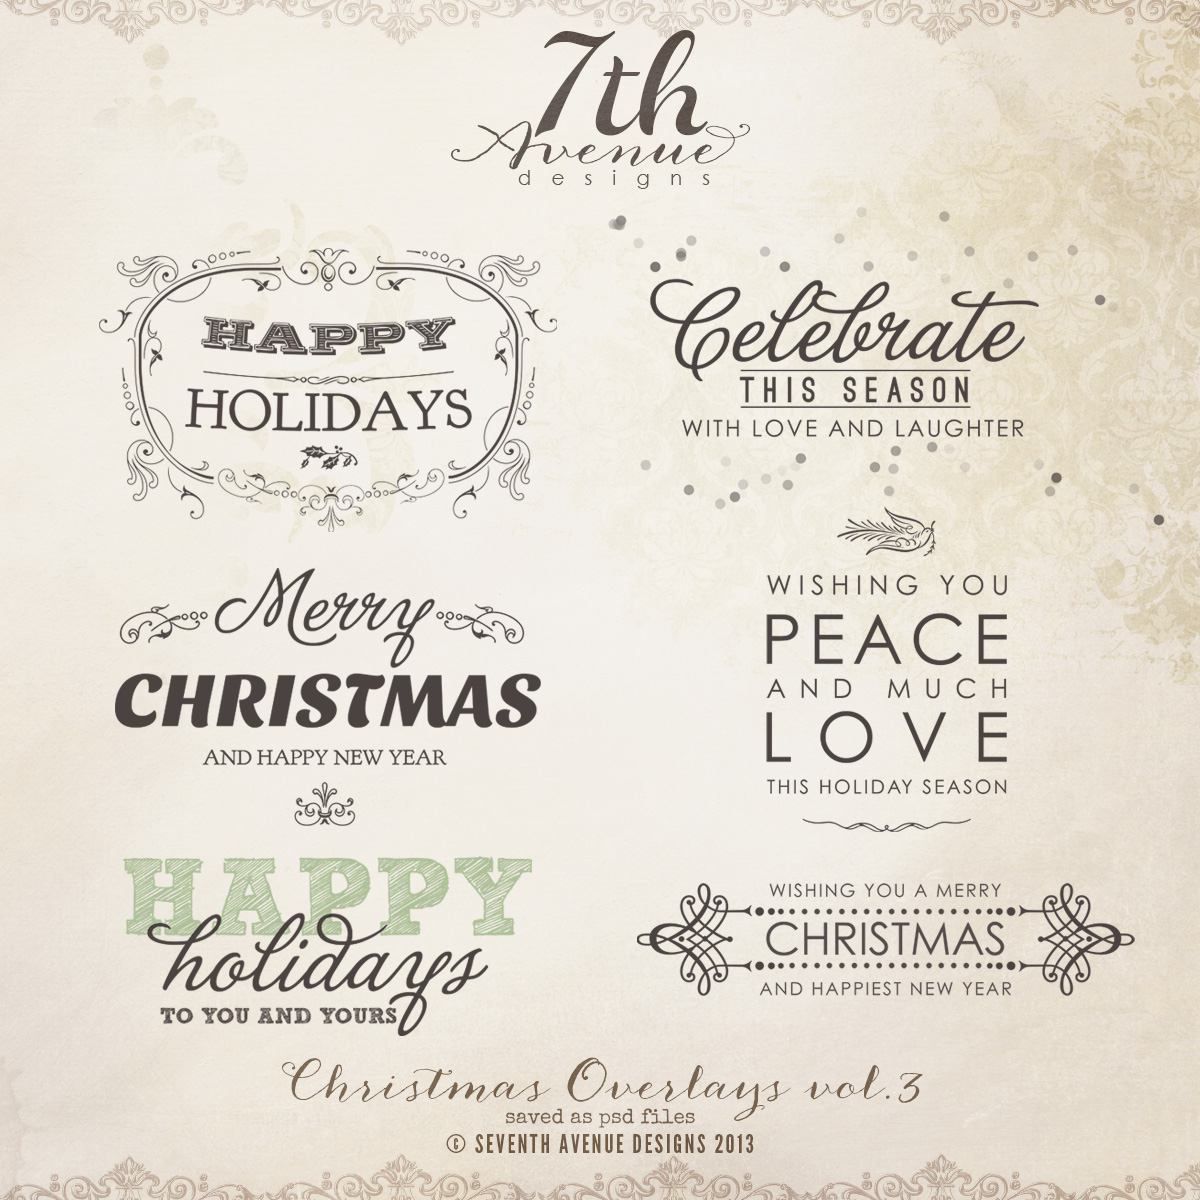 christmas overlays vol3 - Christmas Overlays